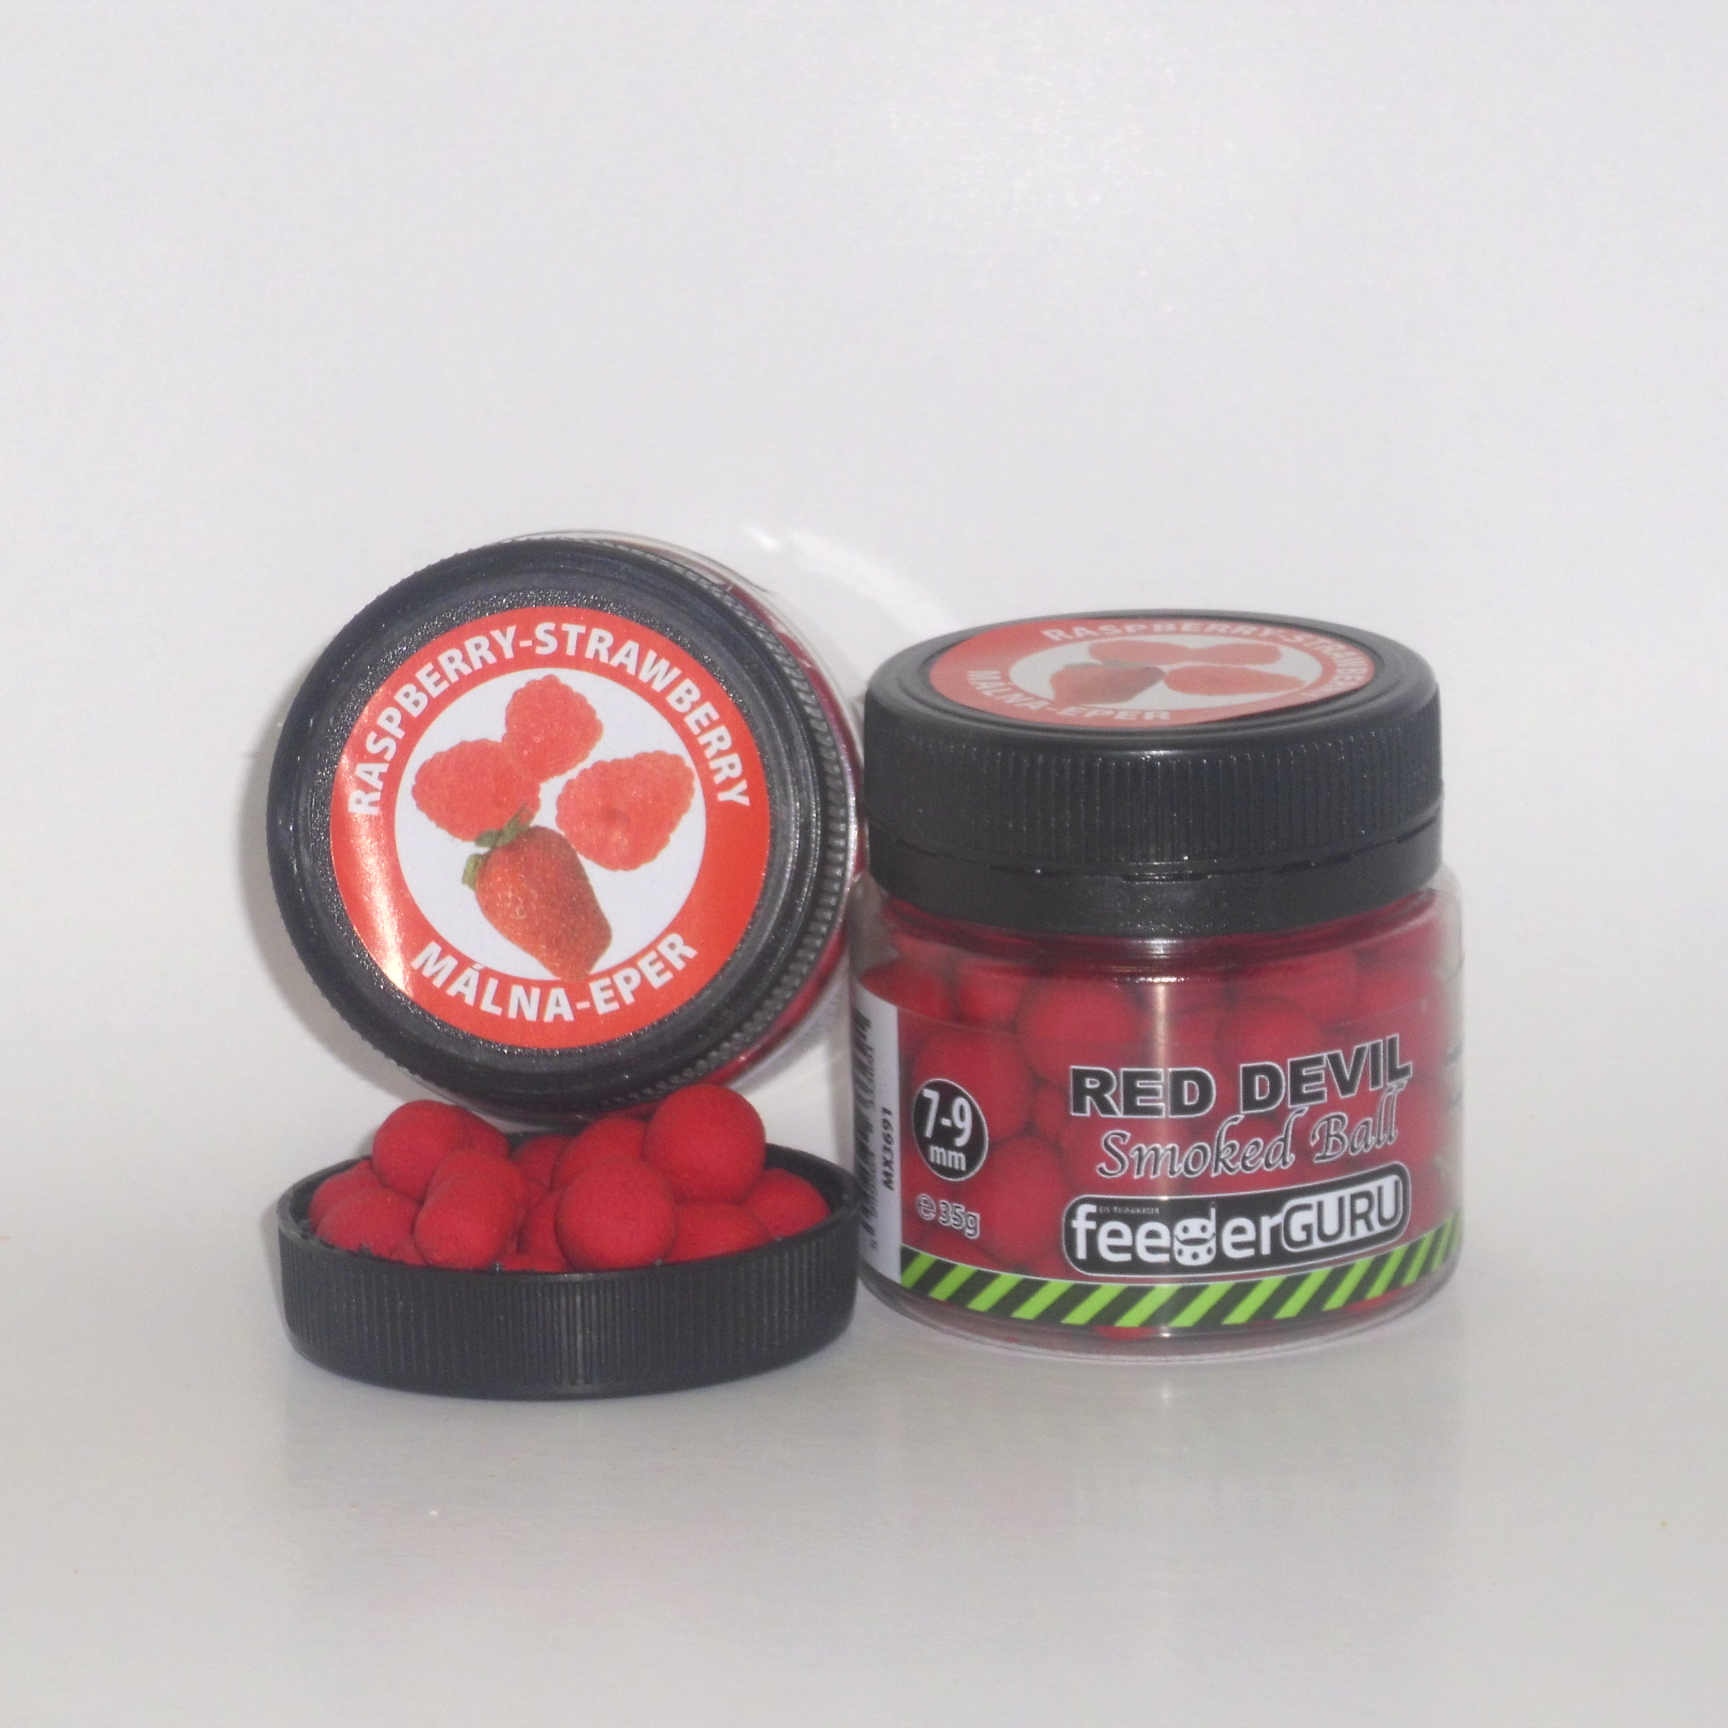 FG Smoked Balls 7-9 mm 35g Red devil